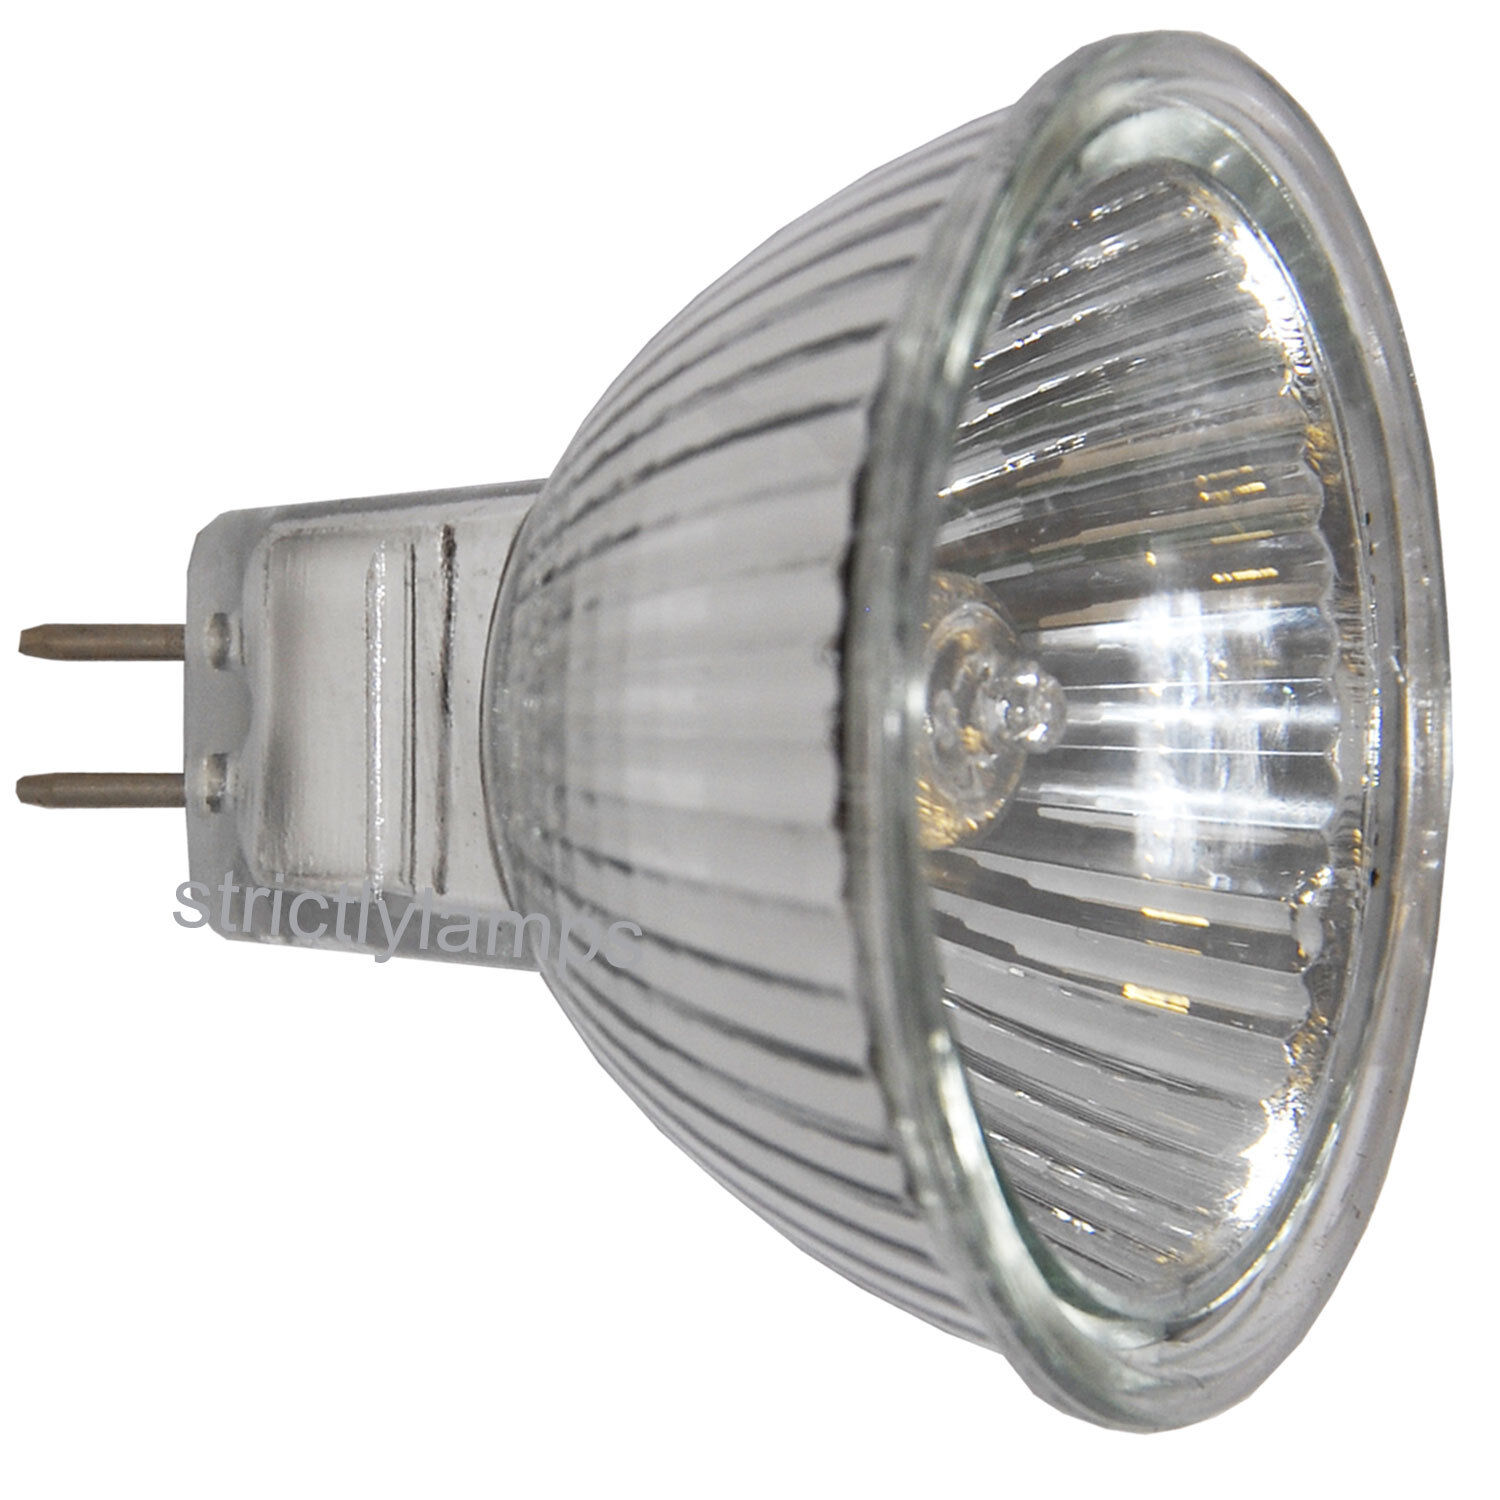 Q75mr16em Mr16 Halogen Light Bulb: 5 X MR16 20w Halogen Light Bulbs 12v Low Voltage Bulbs